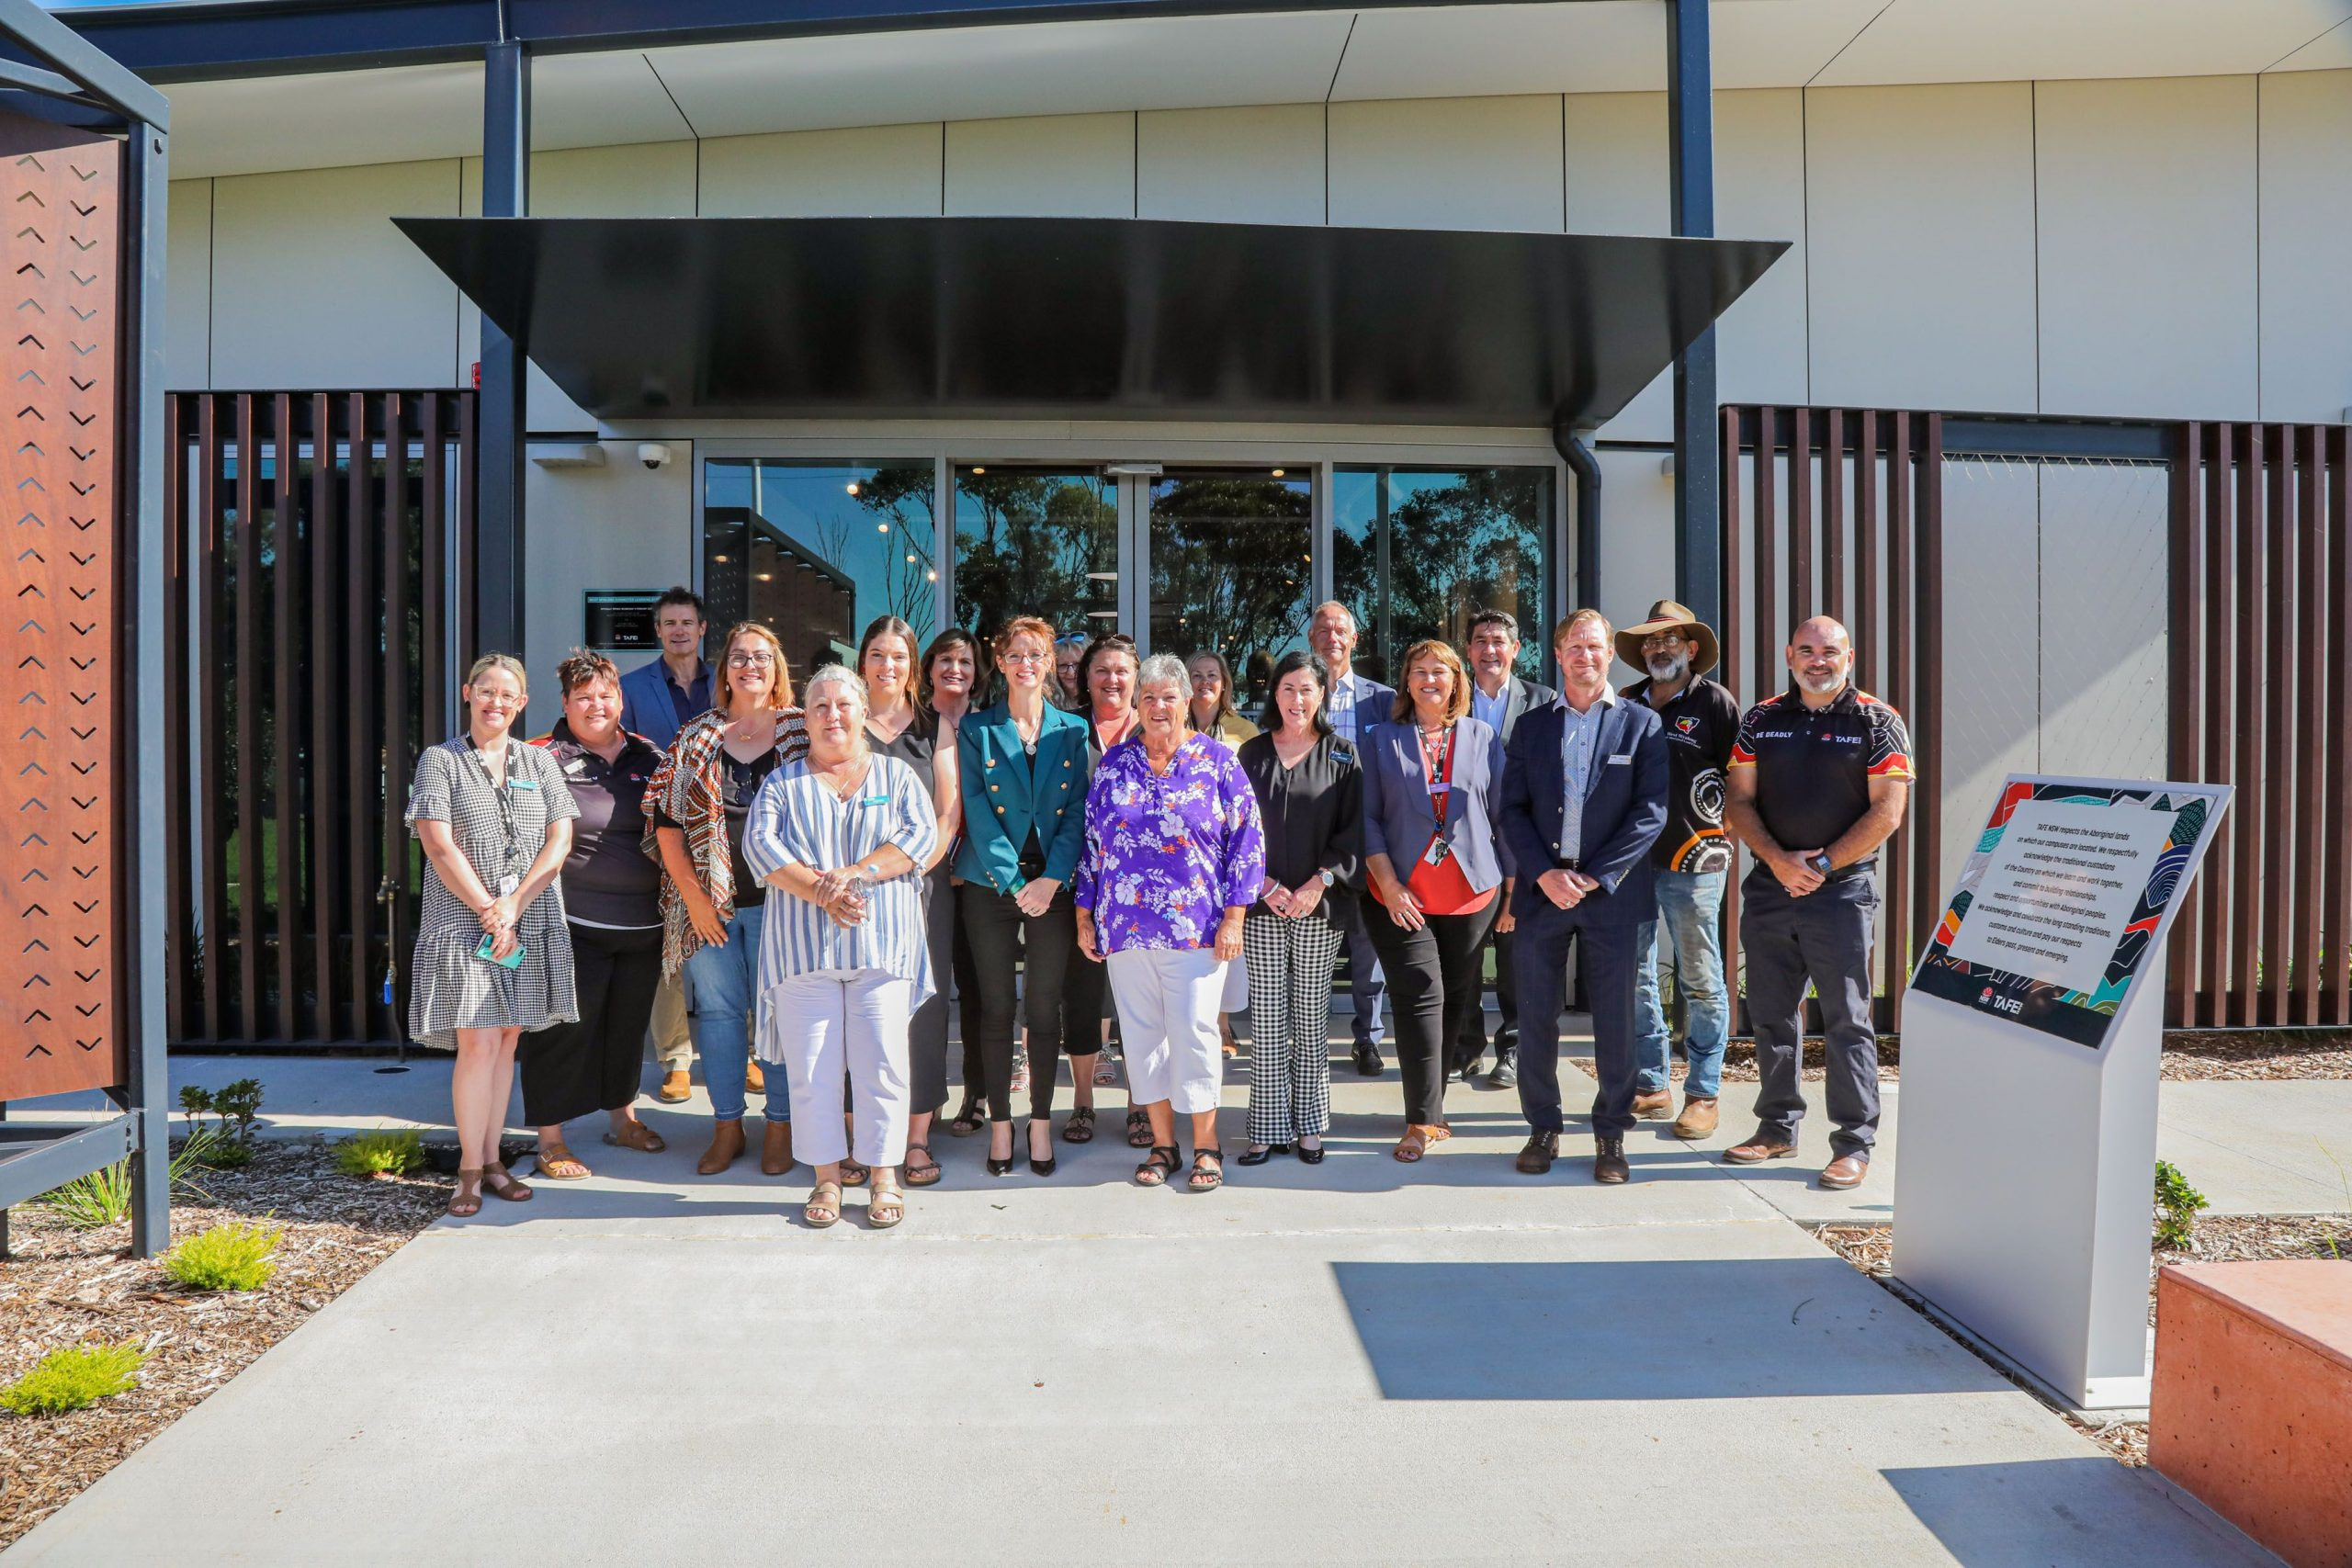 Steph Cooke and Minister Lee stand in a group of TAFE staff in front of a new building.